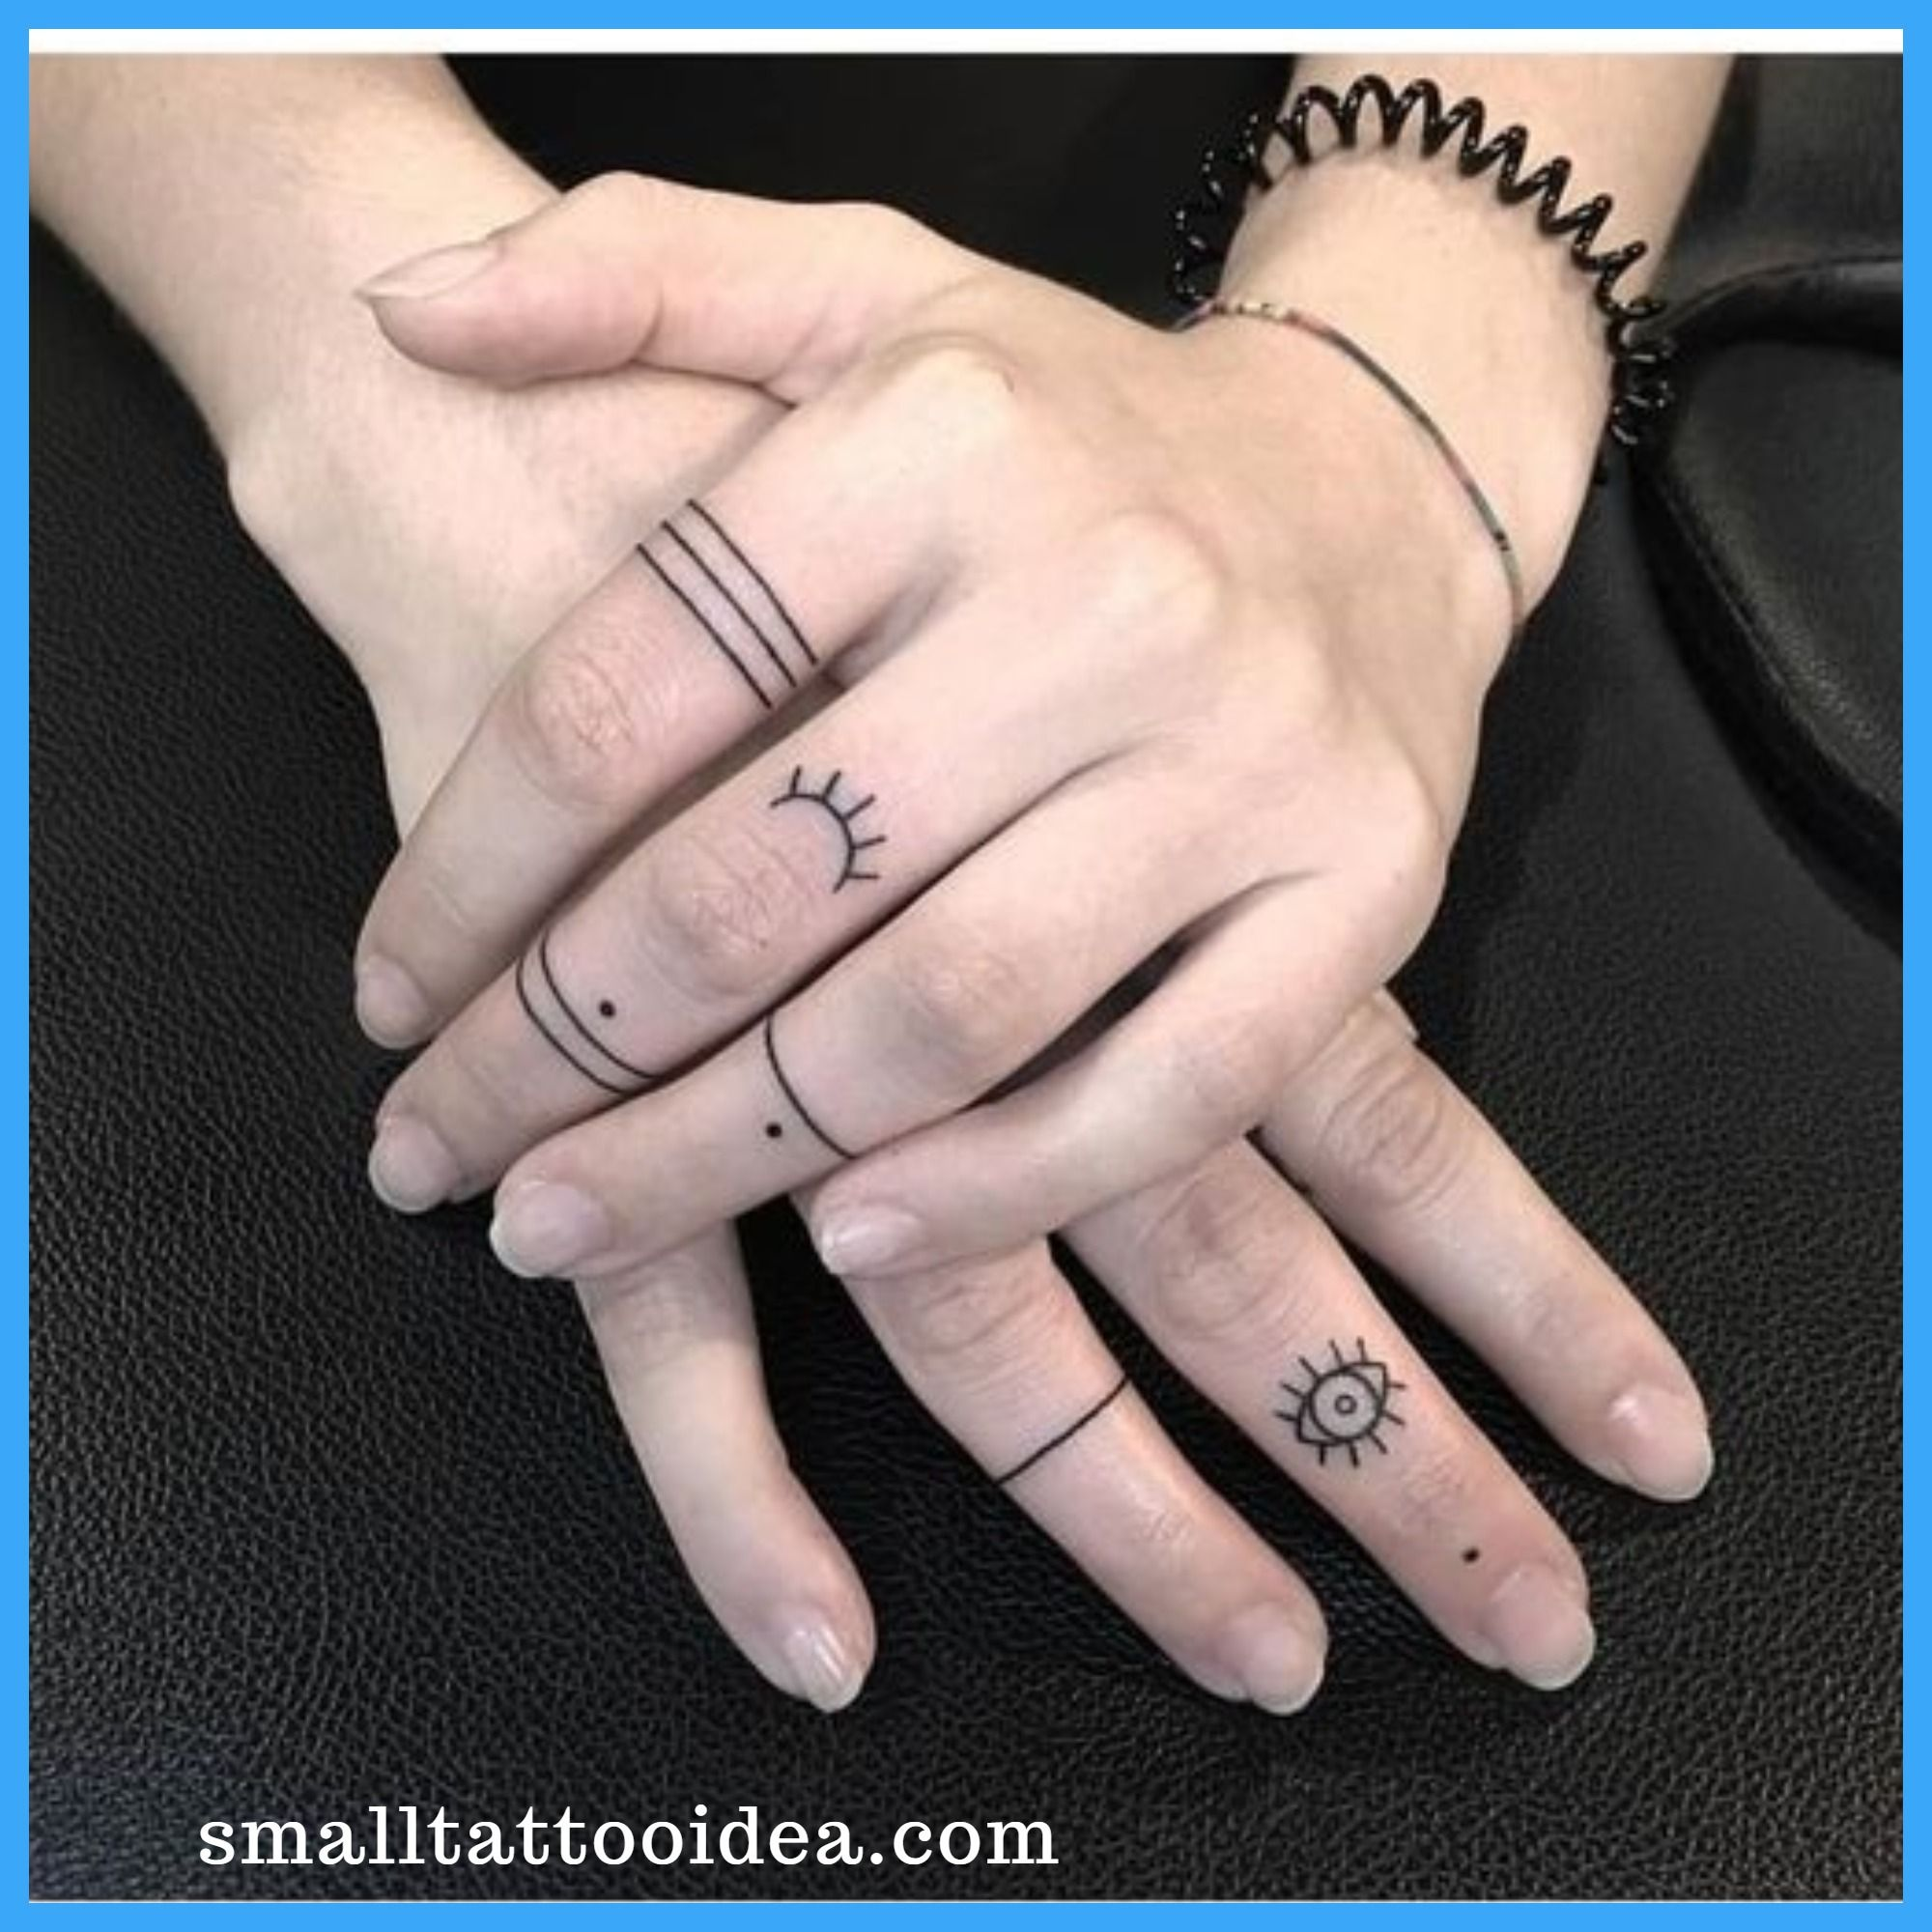 35 Ring Tattoo Meaning With Ideas Tattoos Tattoo Designs For Women Mini Tattoos